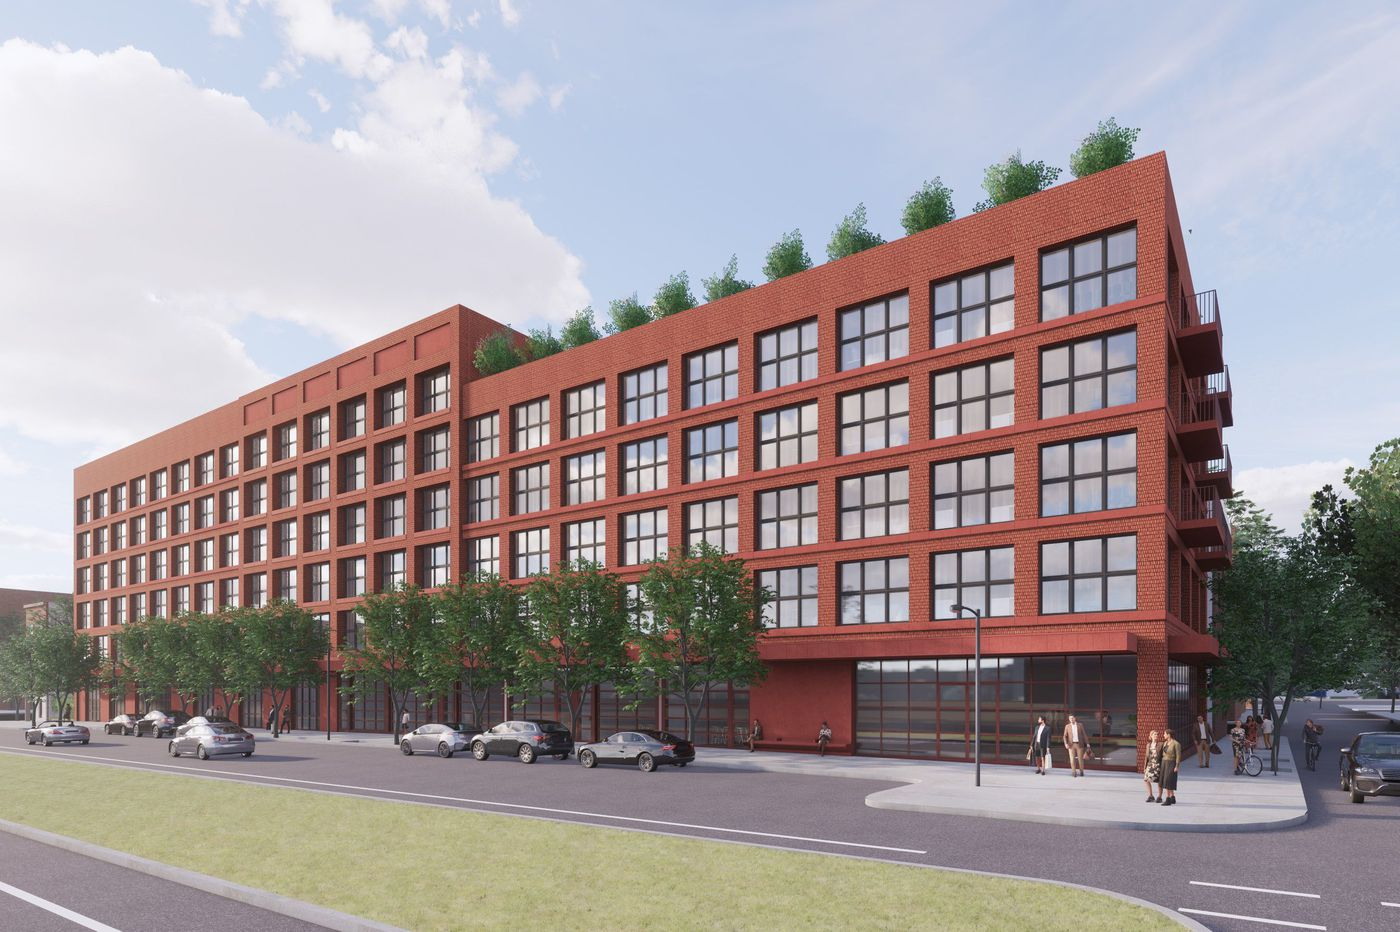 New York-based group to build apartments at site once eyed by electrical workers' union charter school